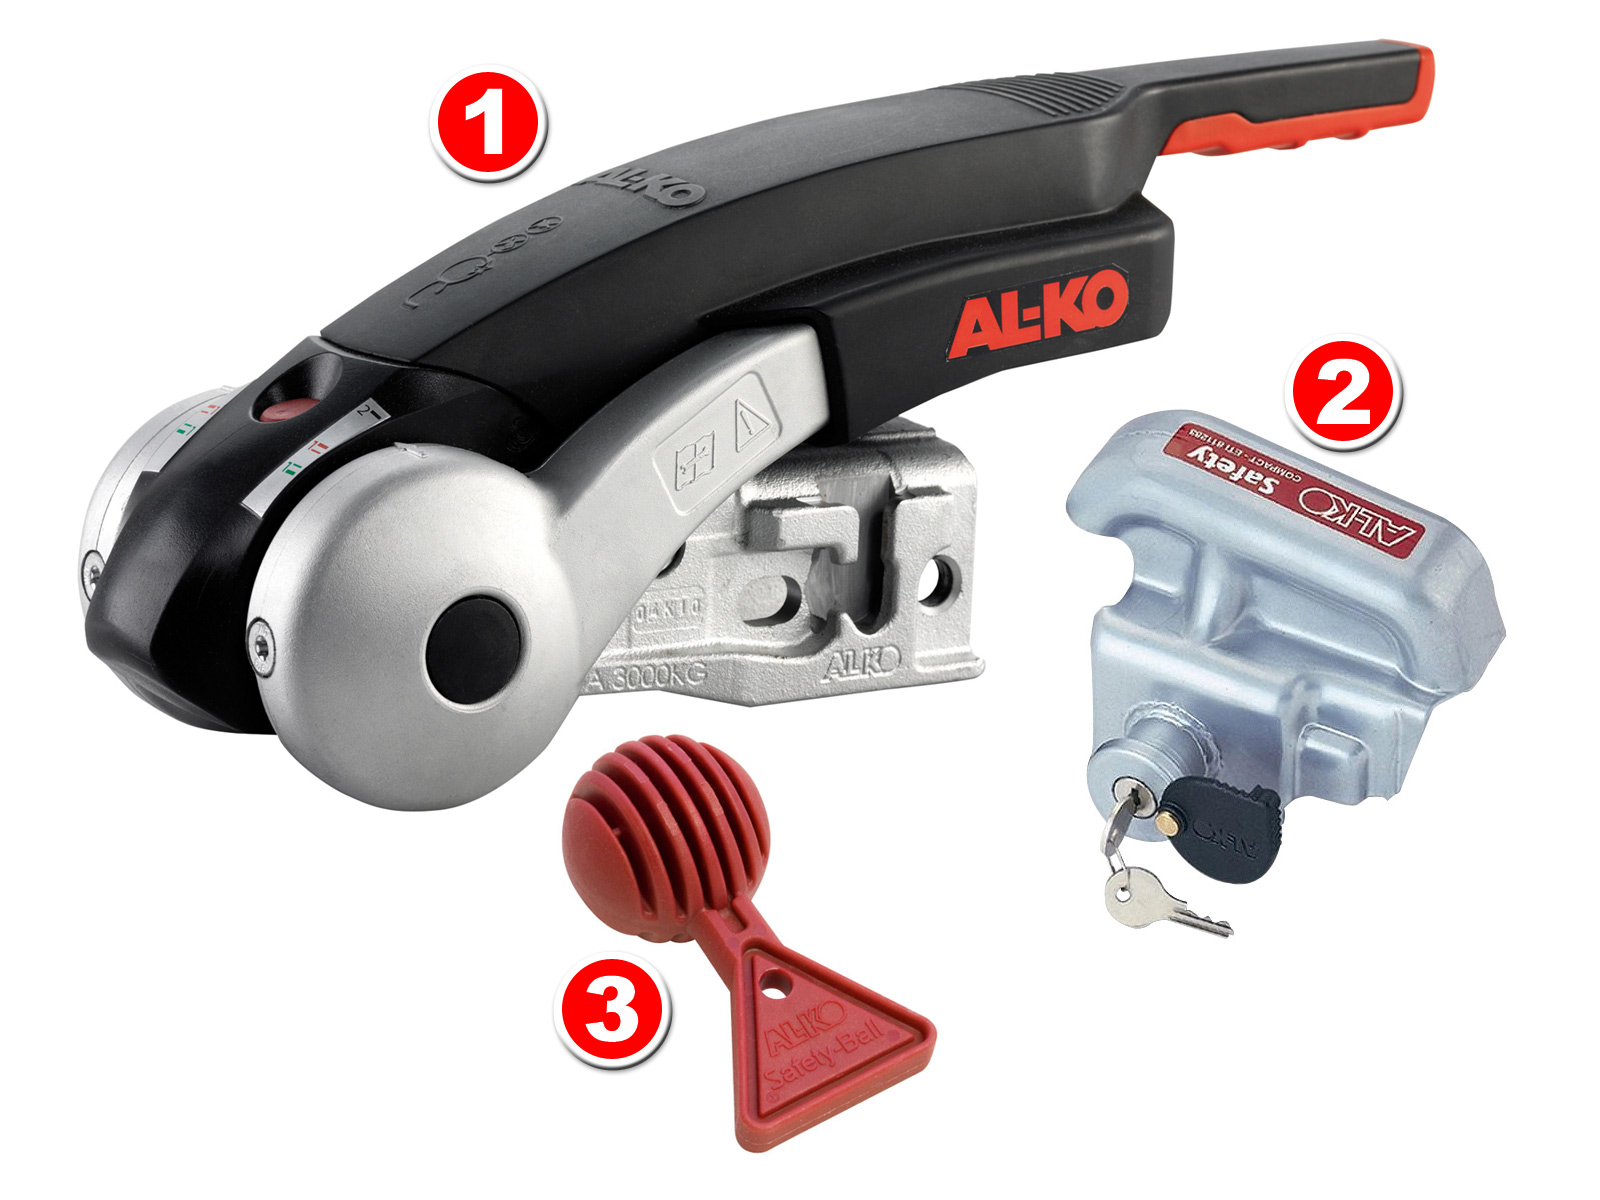 AL-KO AKS 3004 safety coupling incl. antitheft kit